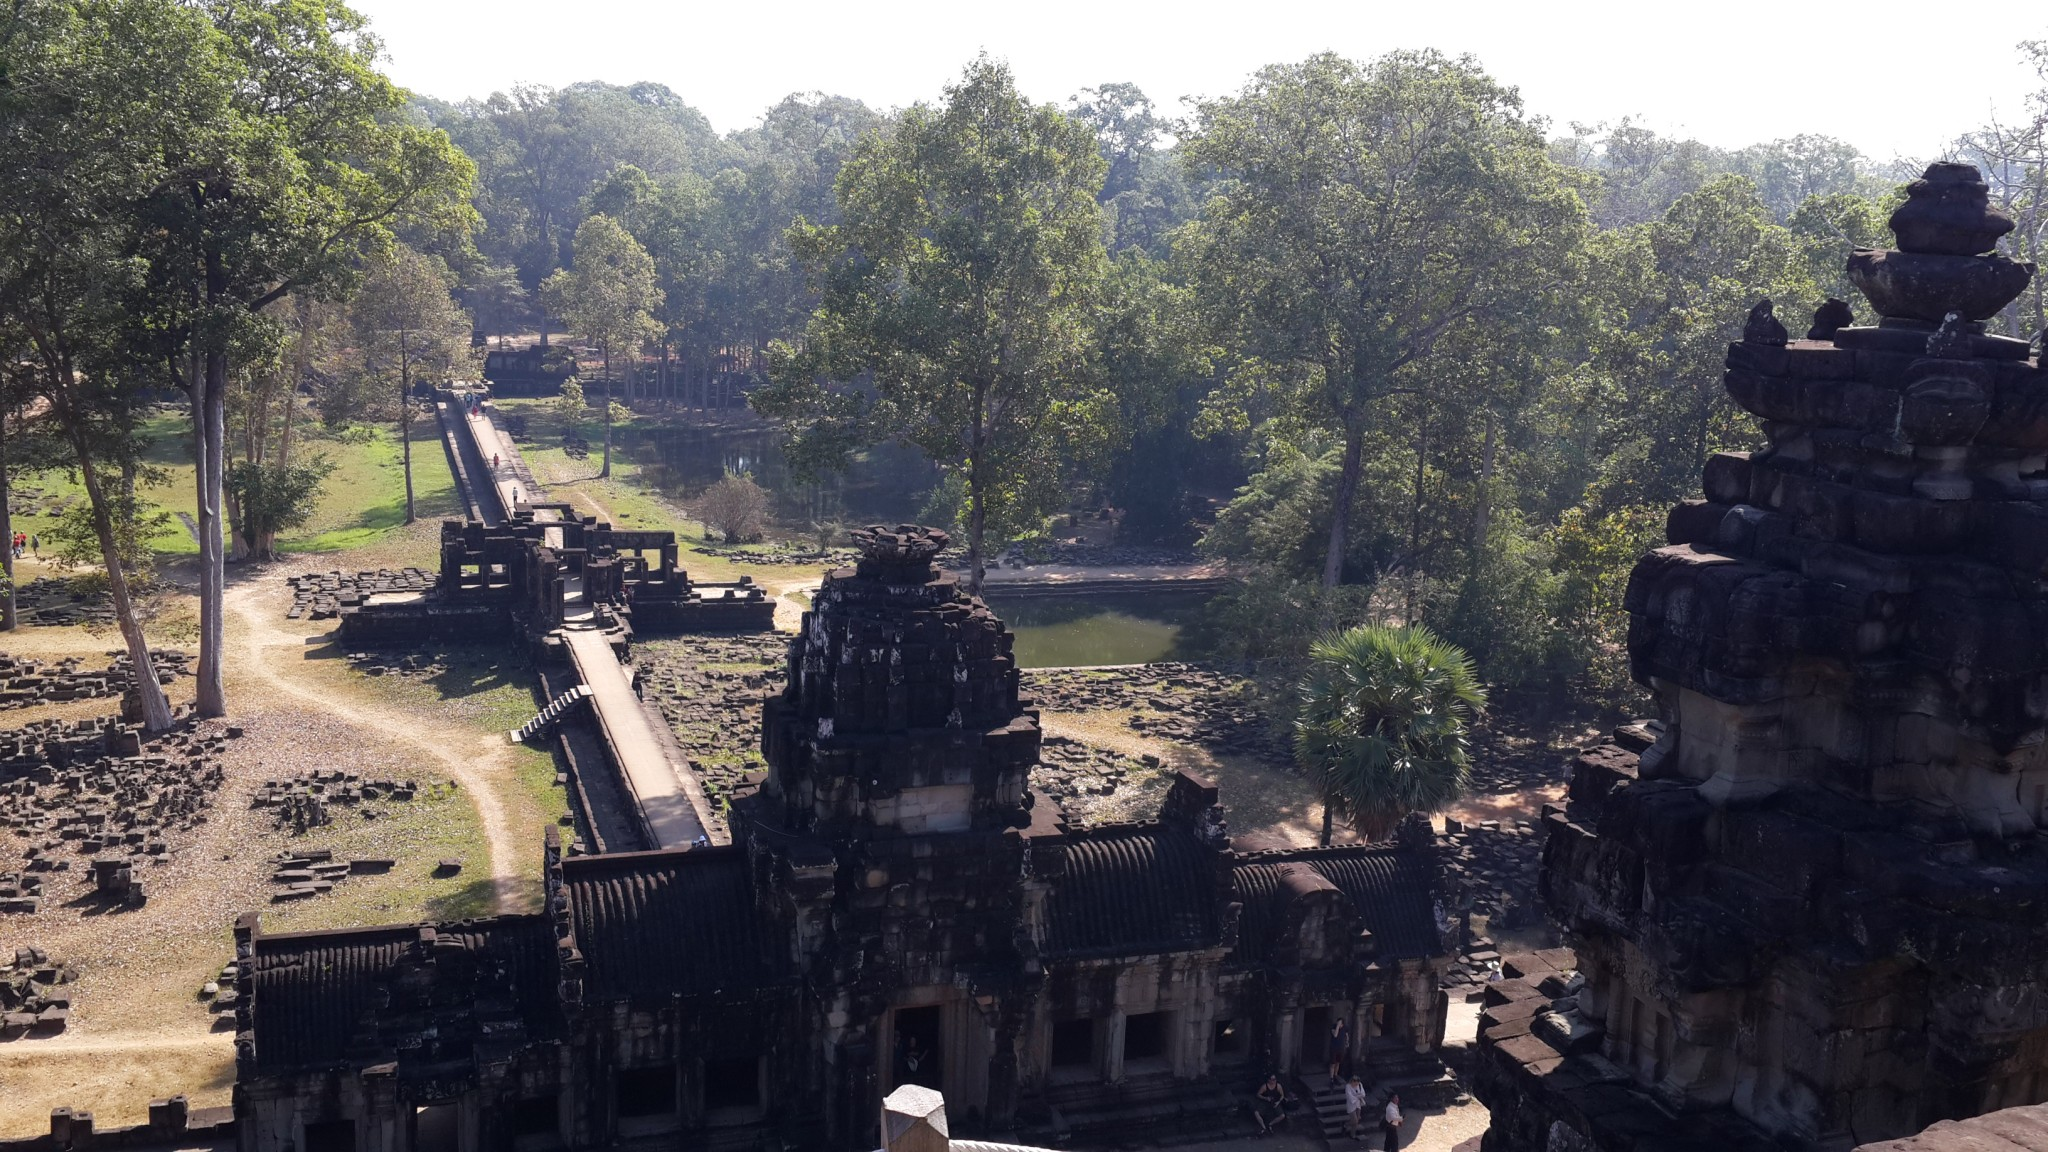 One of many vast structures of the Khmer Empire dating back to the 9th century that comprised the 400 km2 UNESCO World Heritage site, Angkor Archaeological Park.